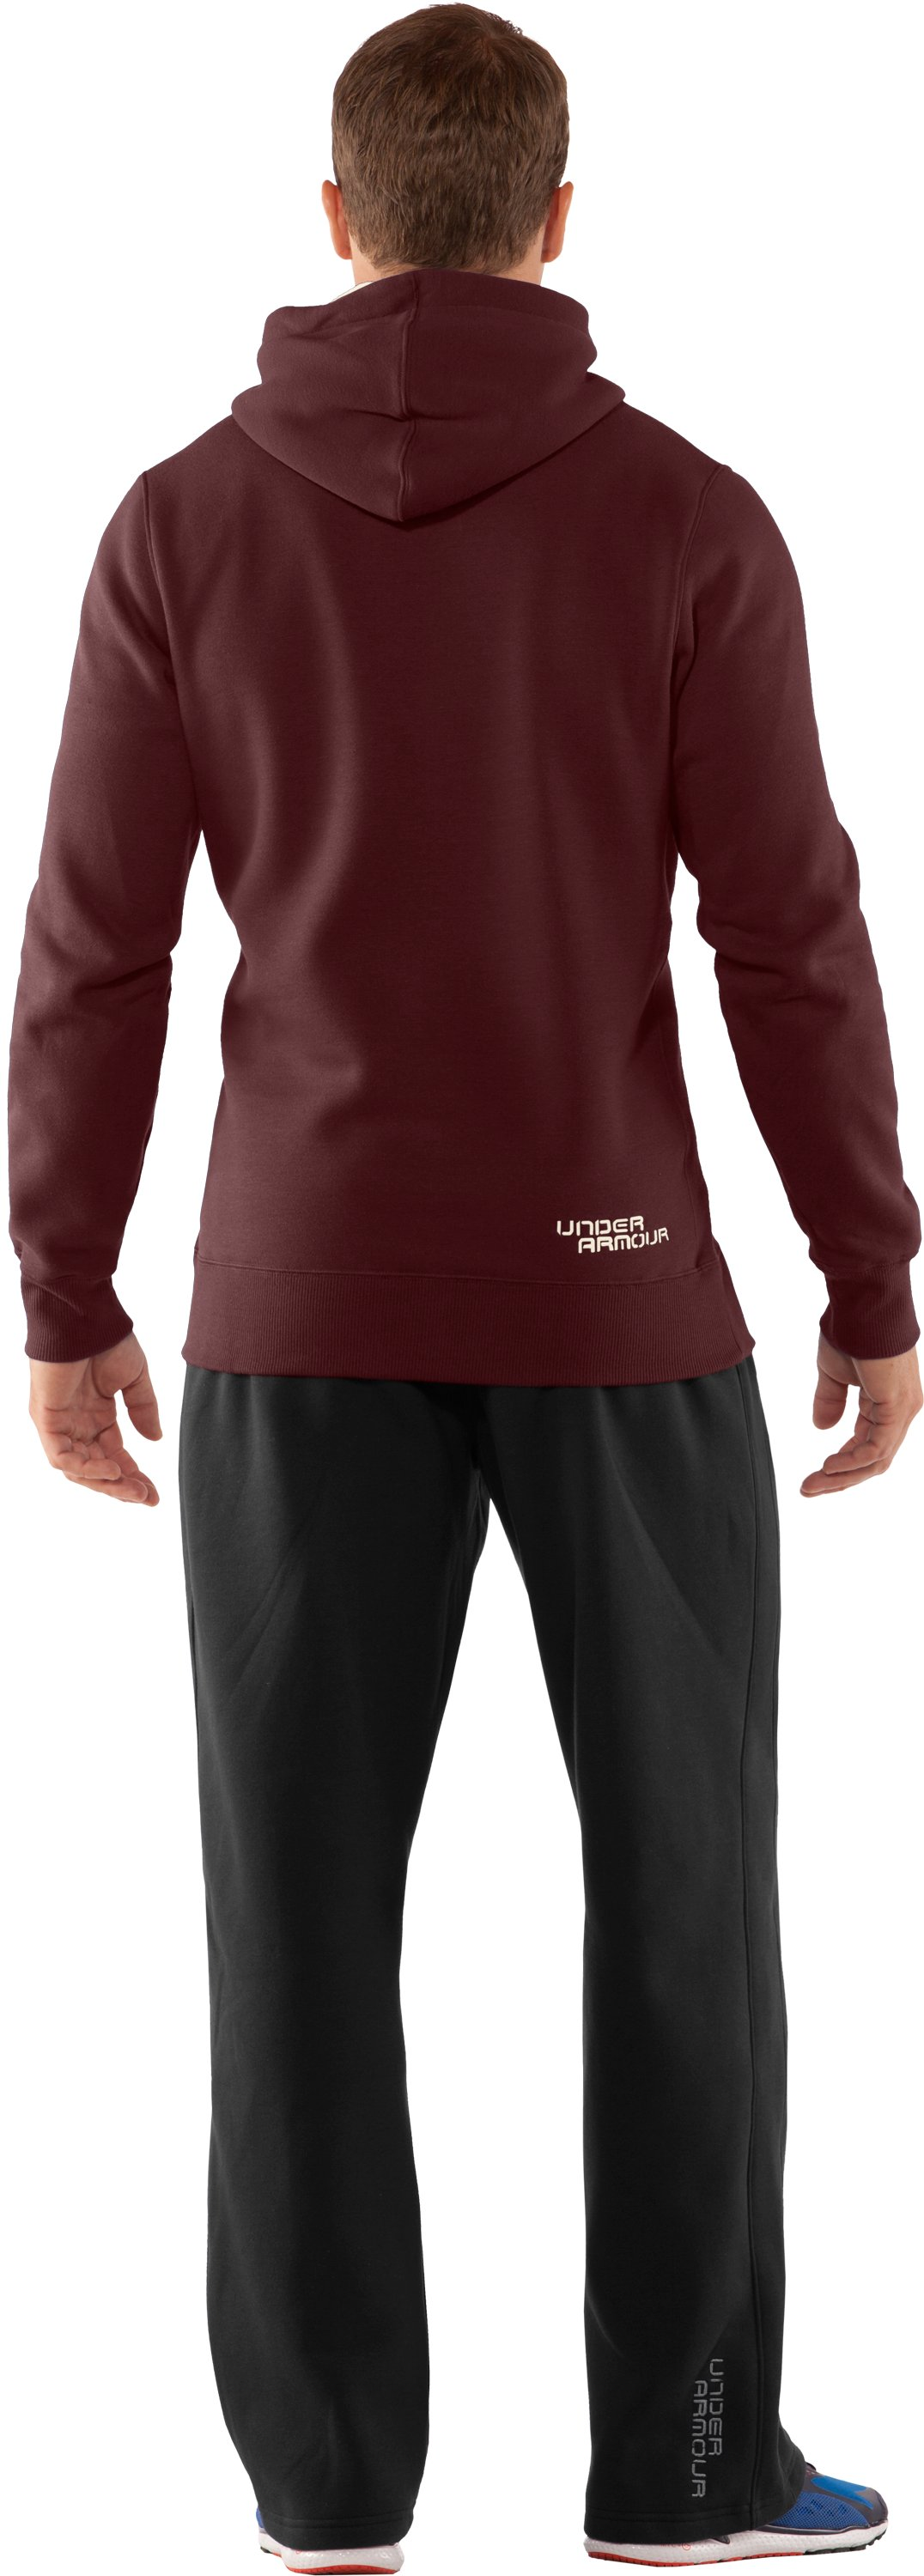 Men's Charged Cotton® Storm Pullover Hoodie, Ox Blood, Back